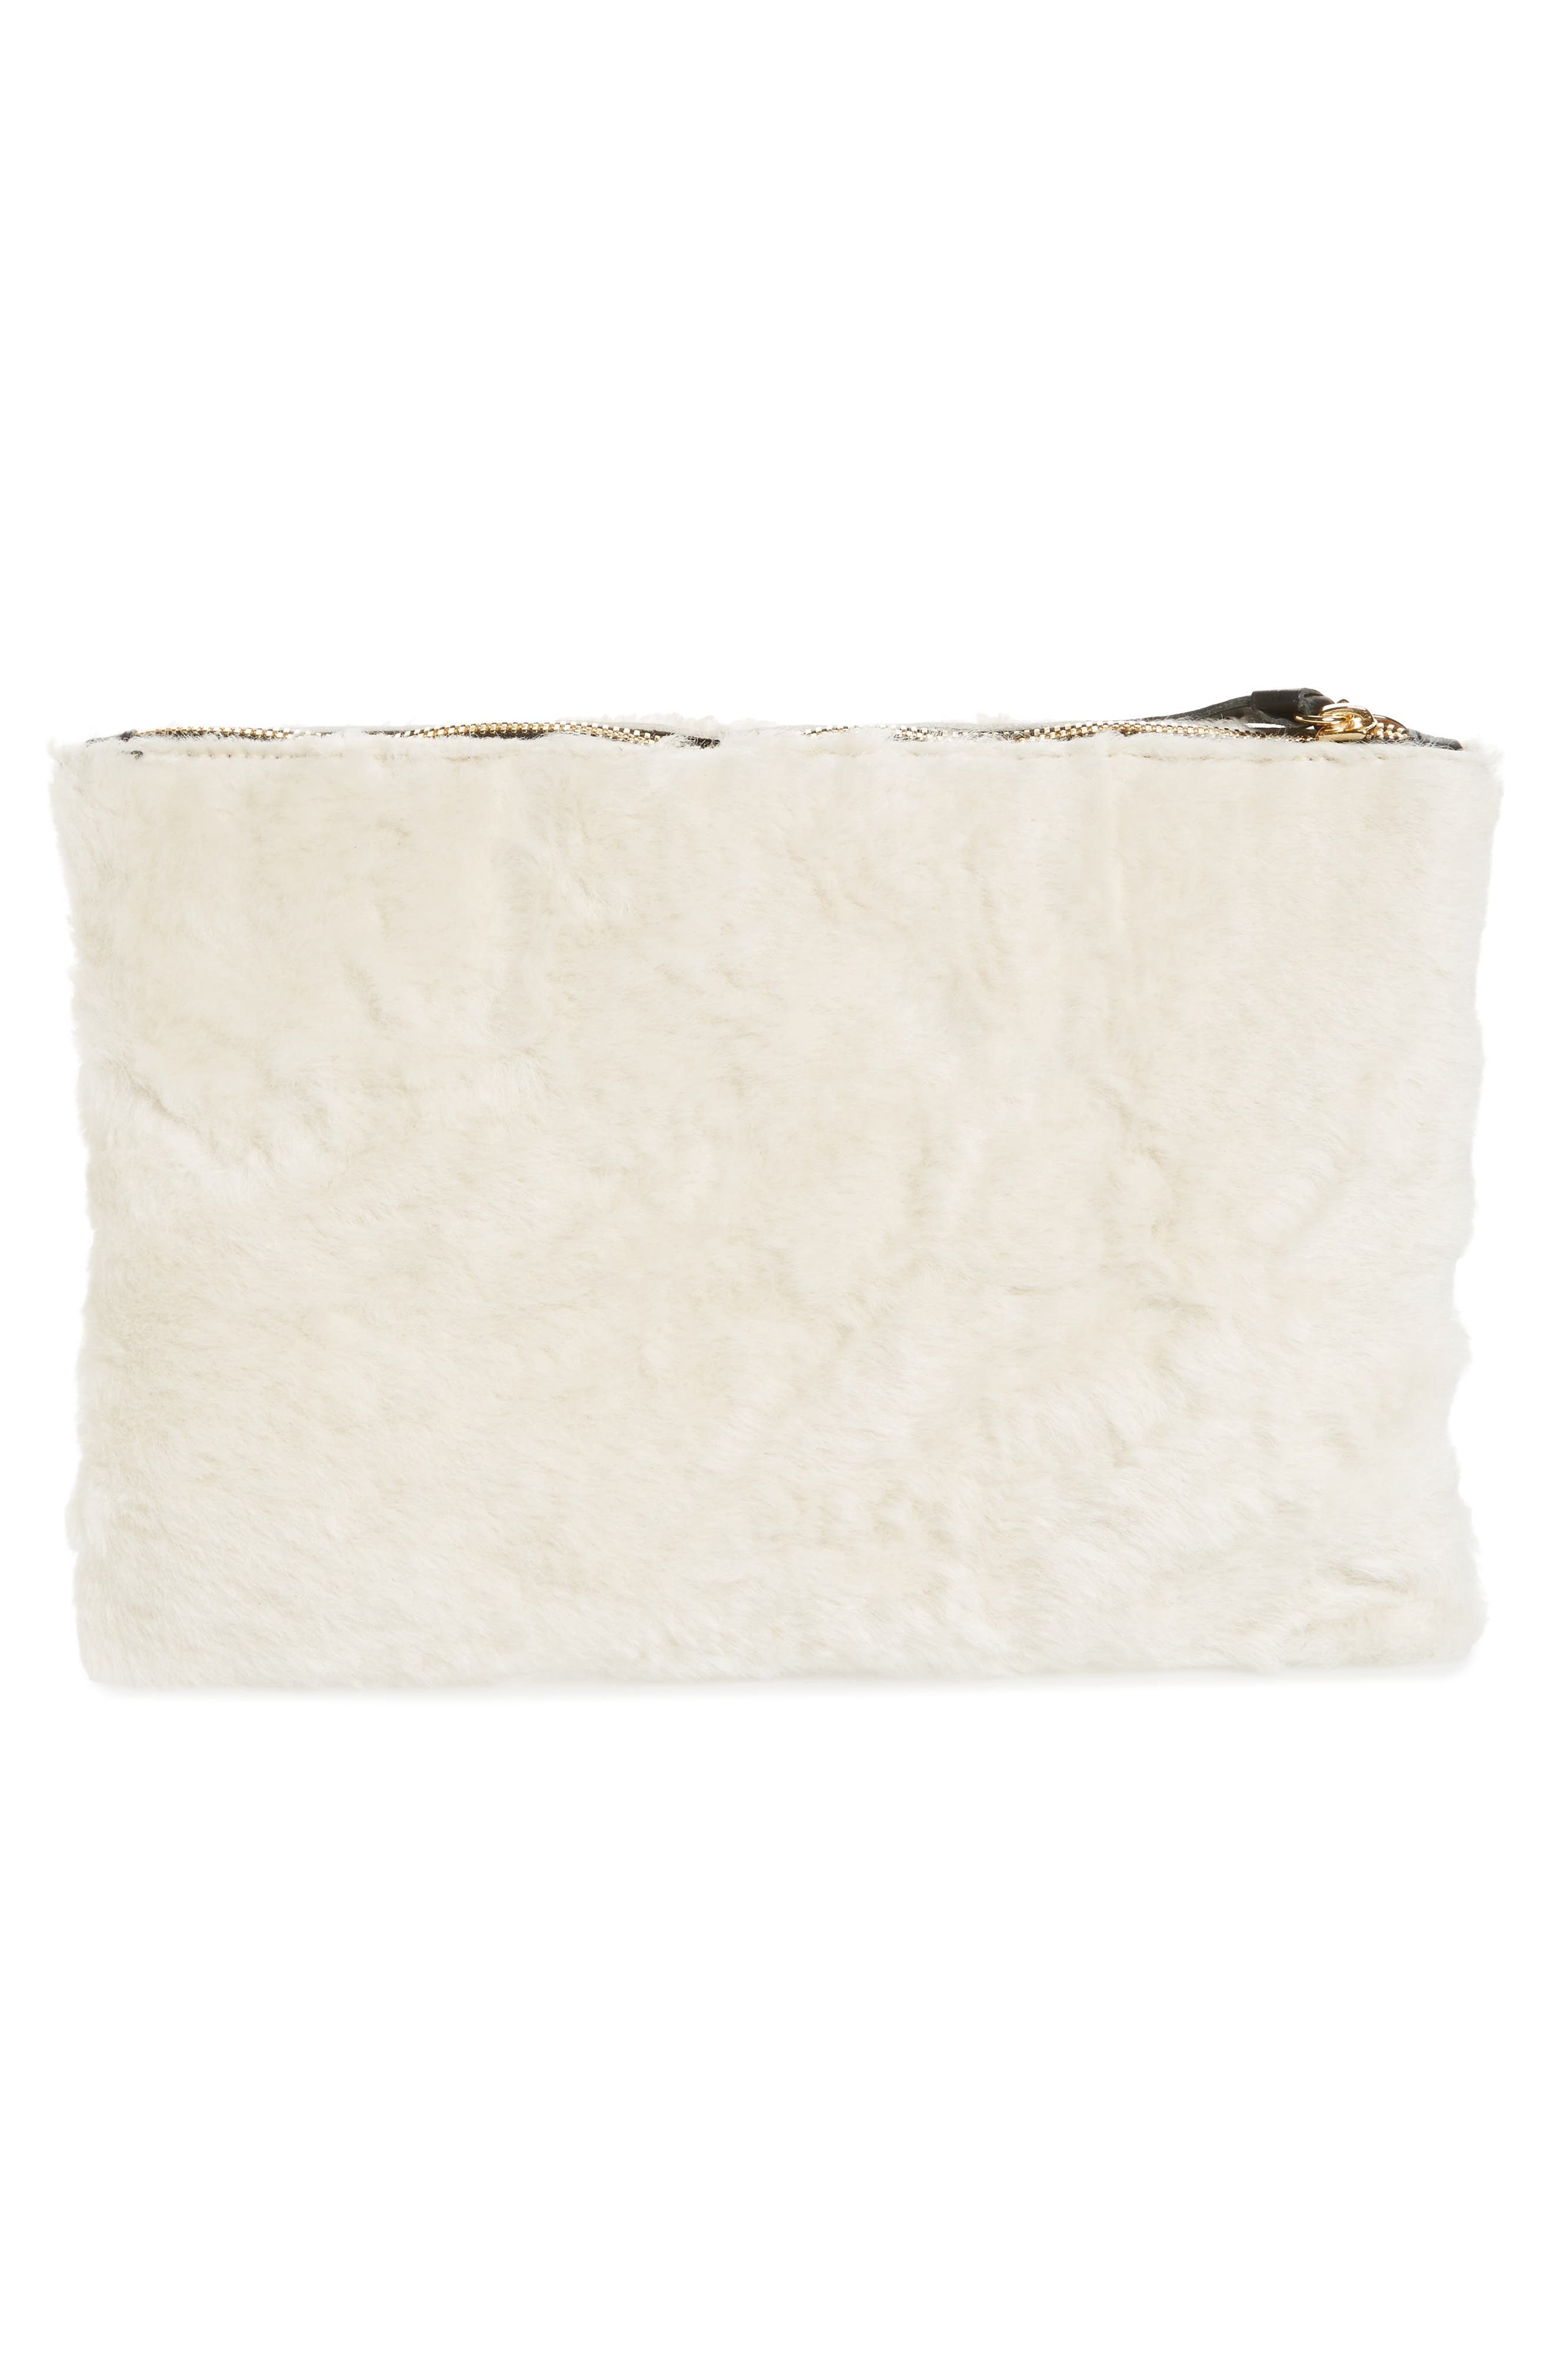 Genuine Shearling Flat Clutch,                             Alternate thumbnail 3, color,                             900